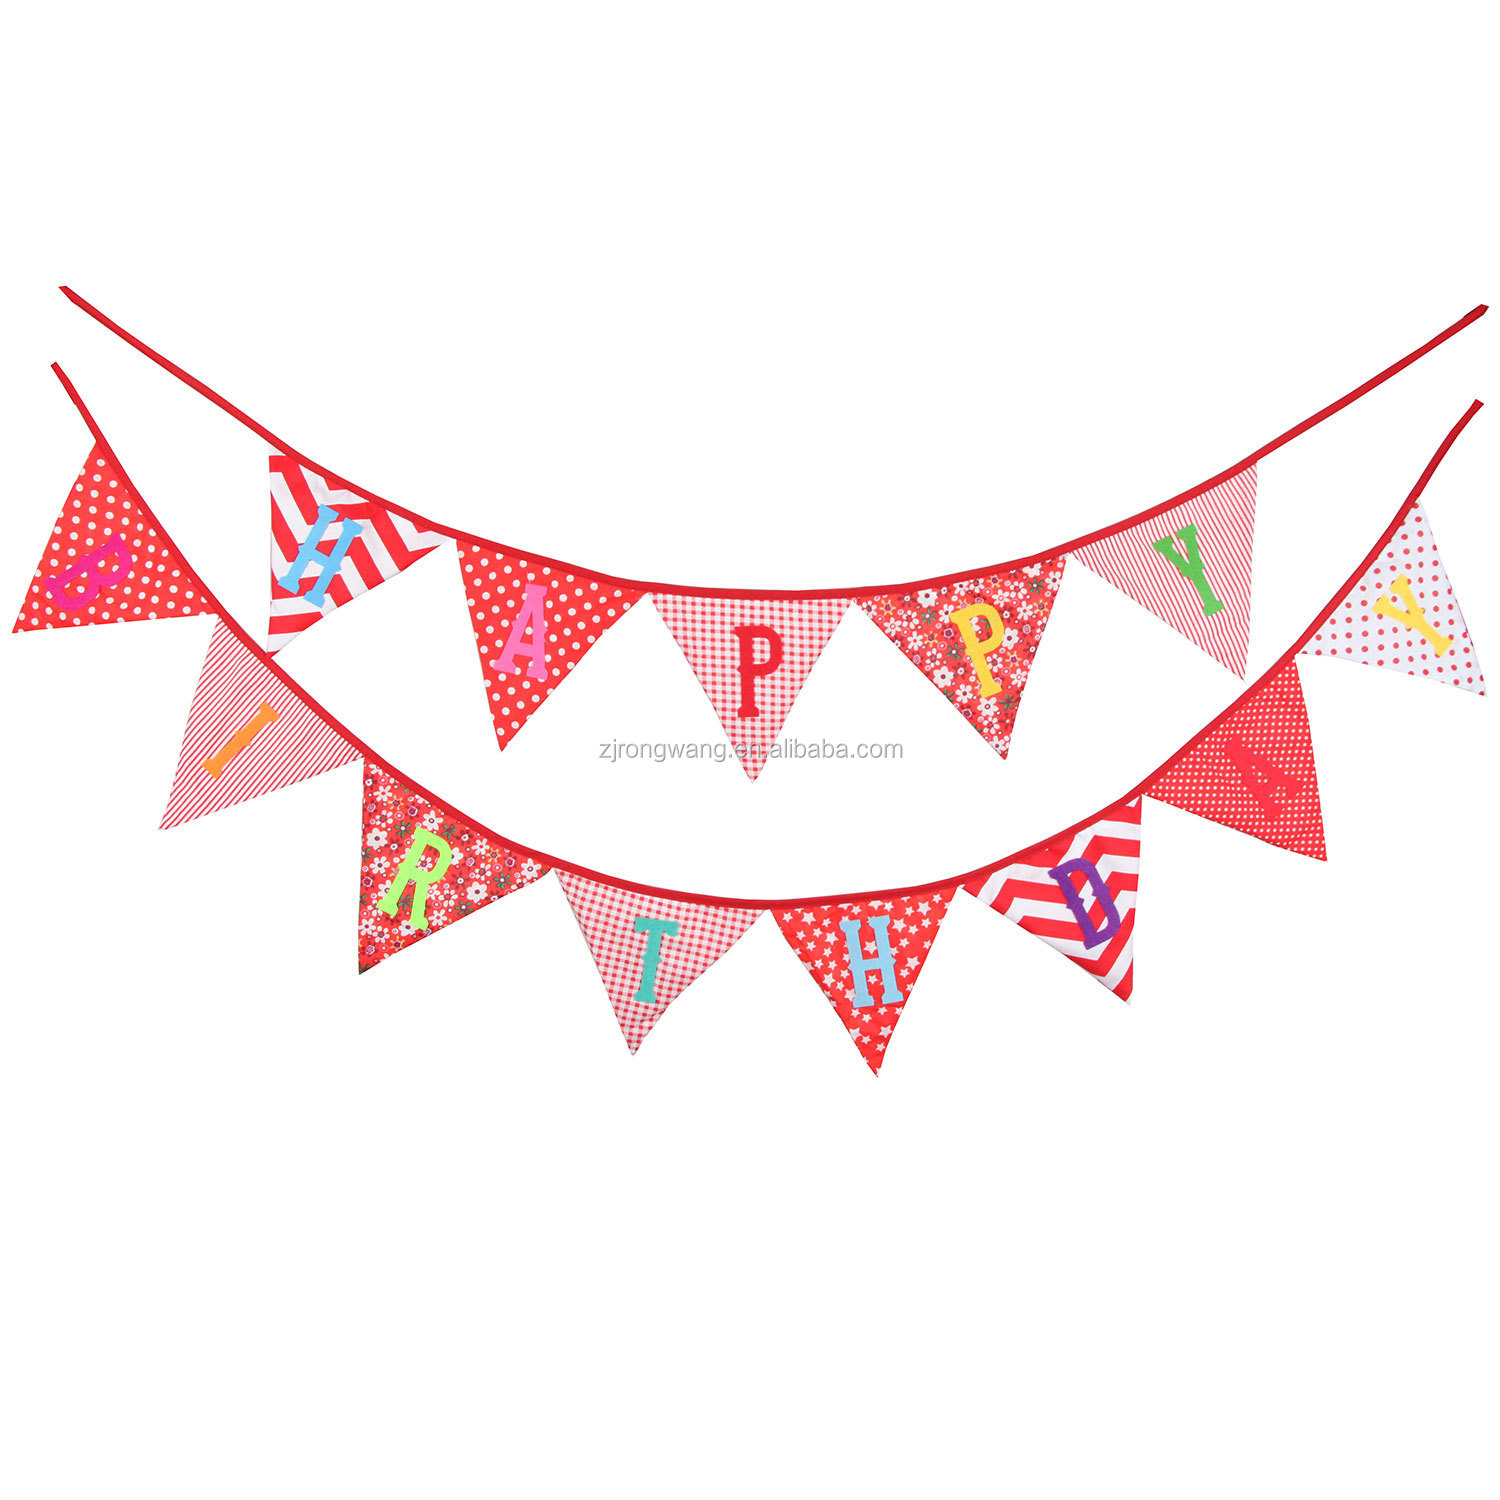 2019 Hot selling indoor happy birthday fabric triangle flag string